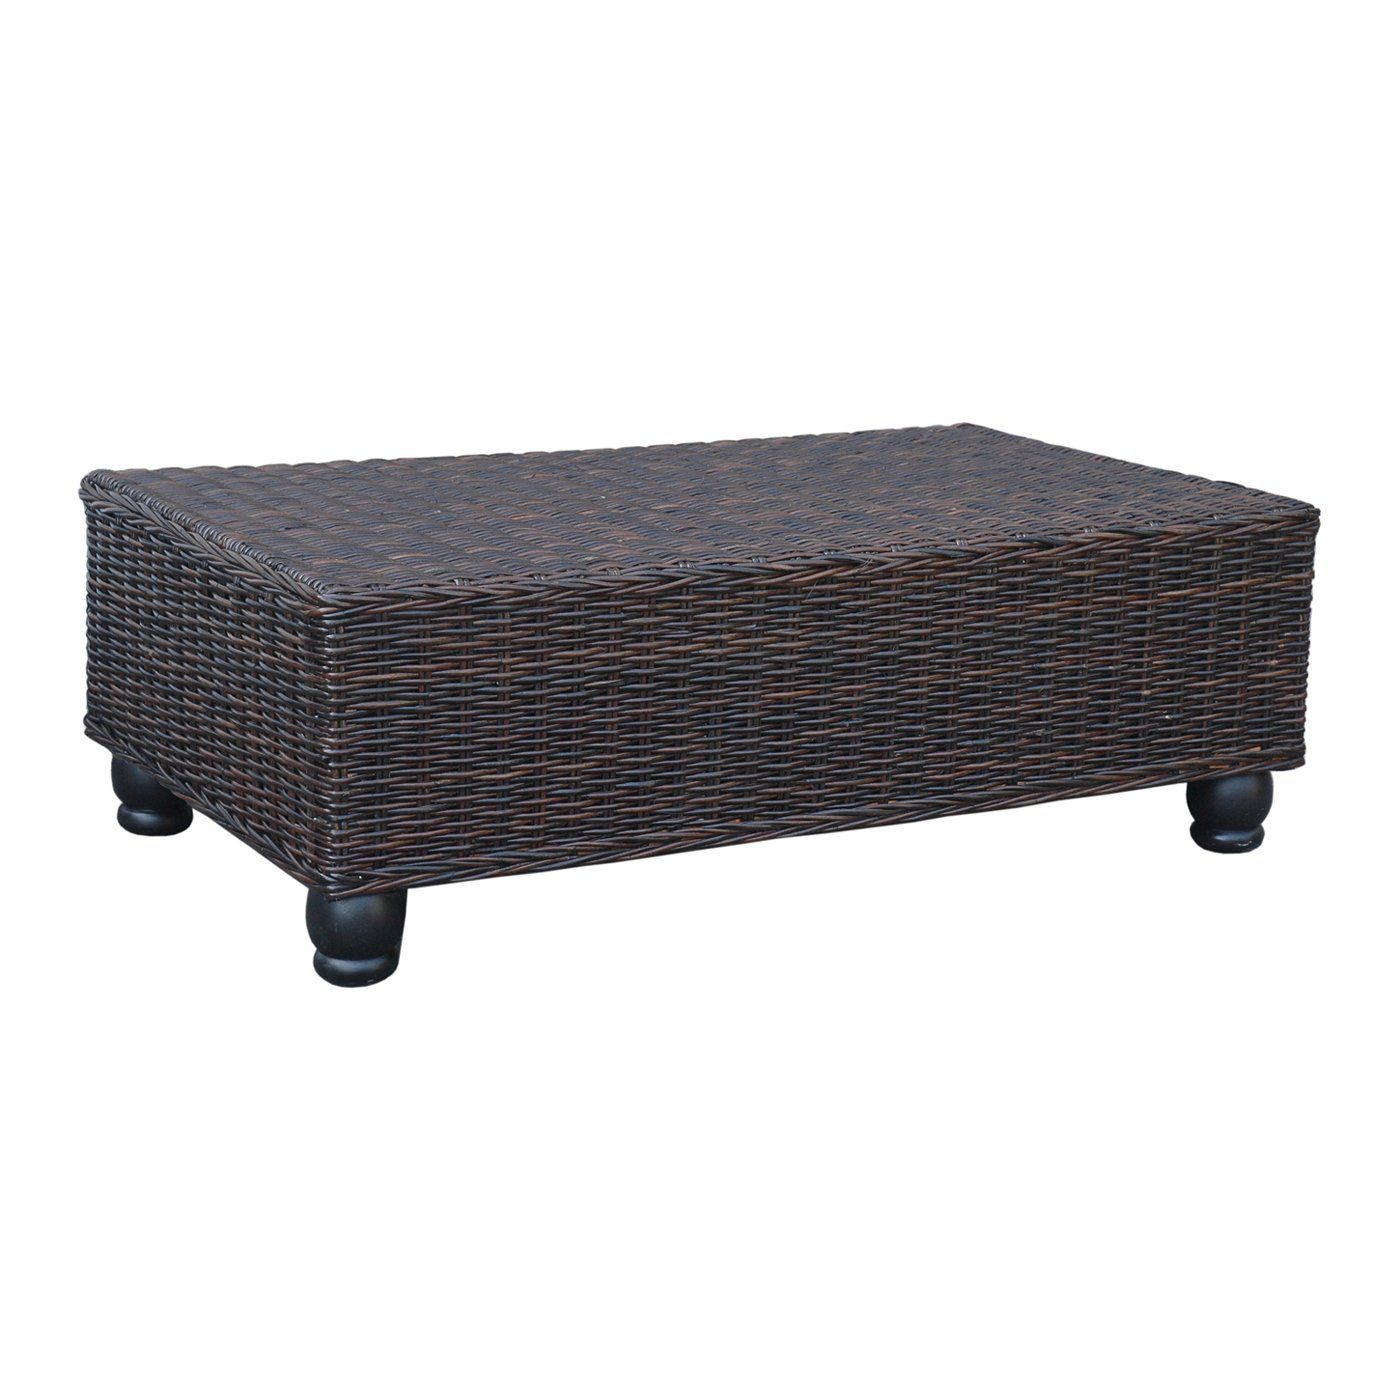 Wonderful Jeffan International JV AMV401 Amava Coffee Table   Home Furniture Showroom